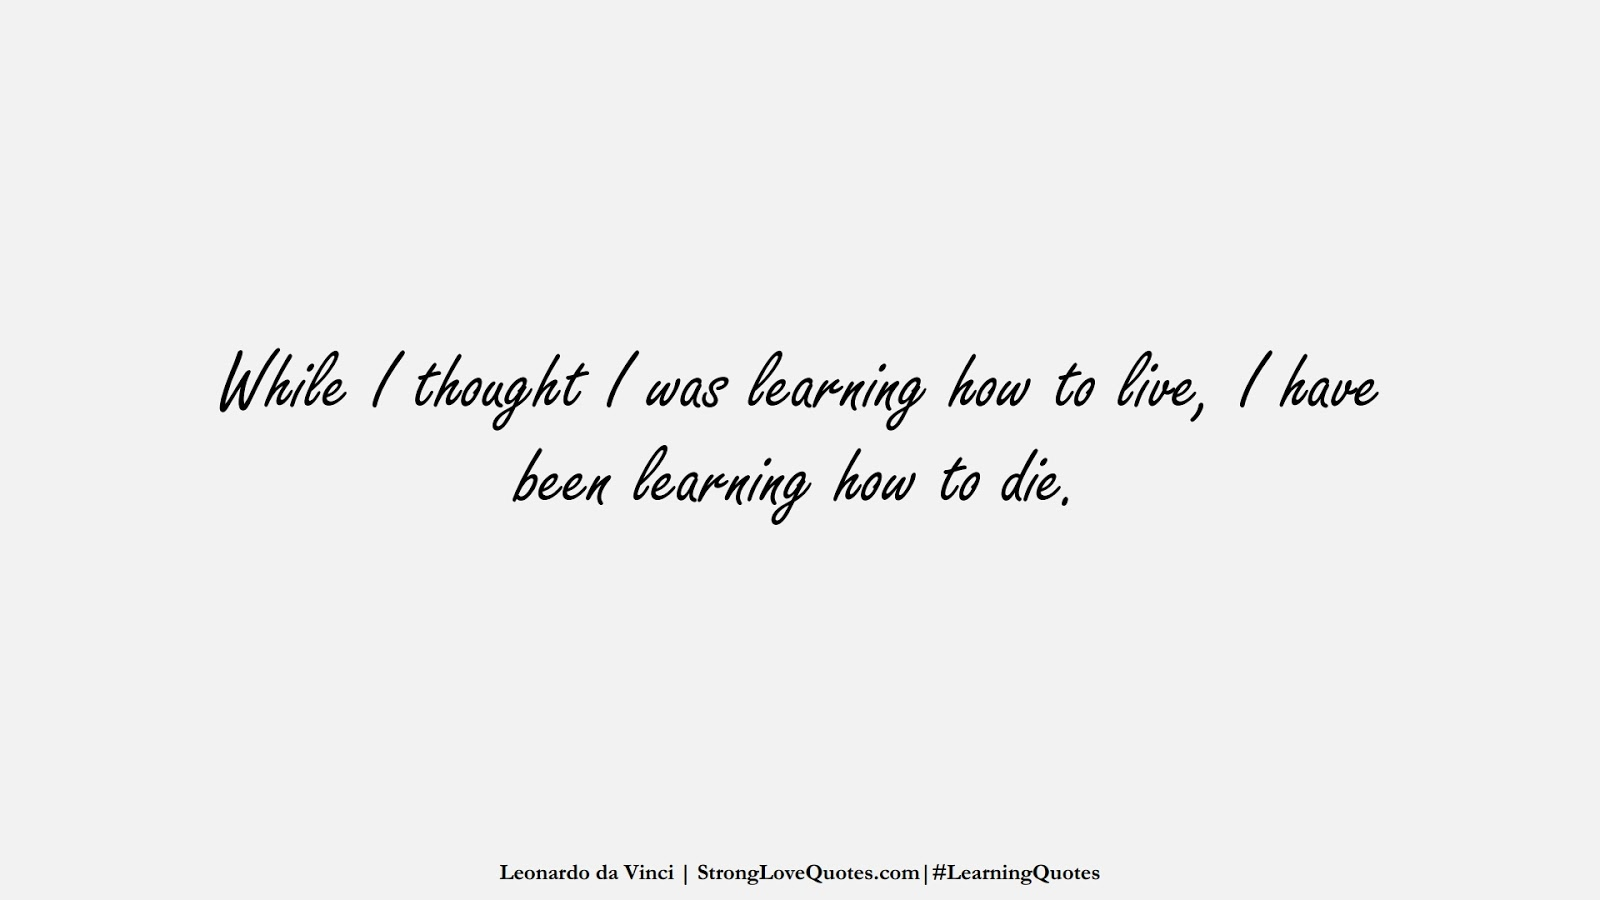 While I thought I was learning how to live, I have been learning how to die. (Leonardo da Vinci);  #LearningQuotes